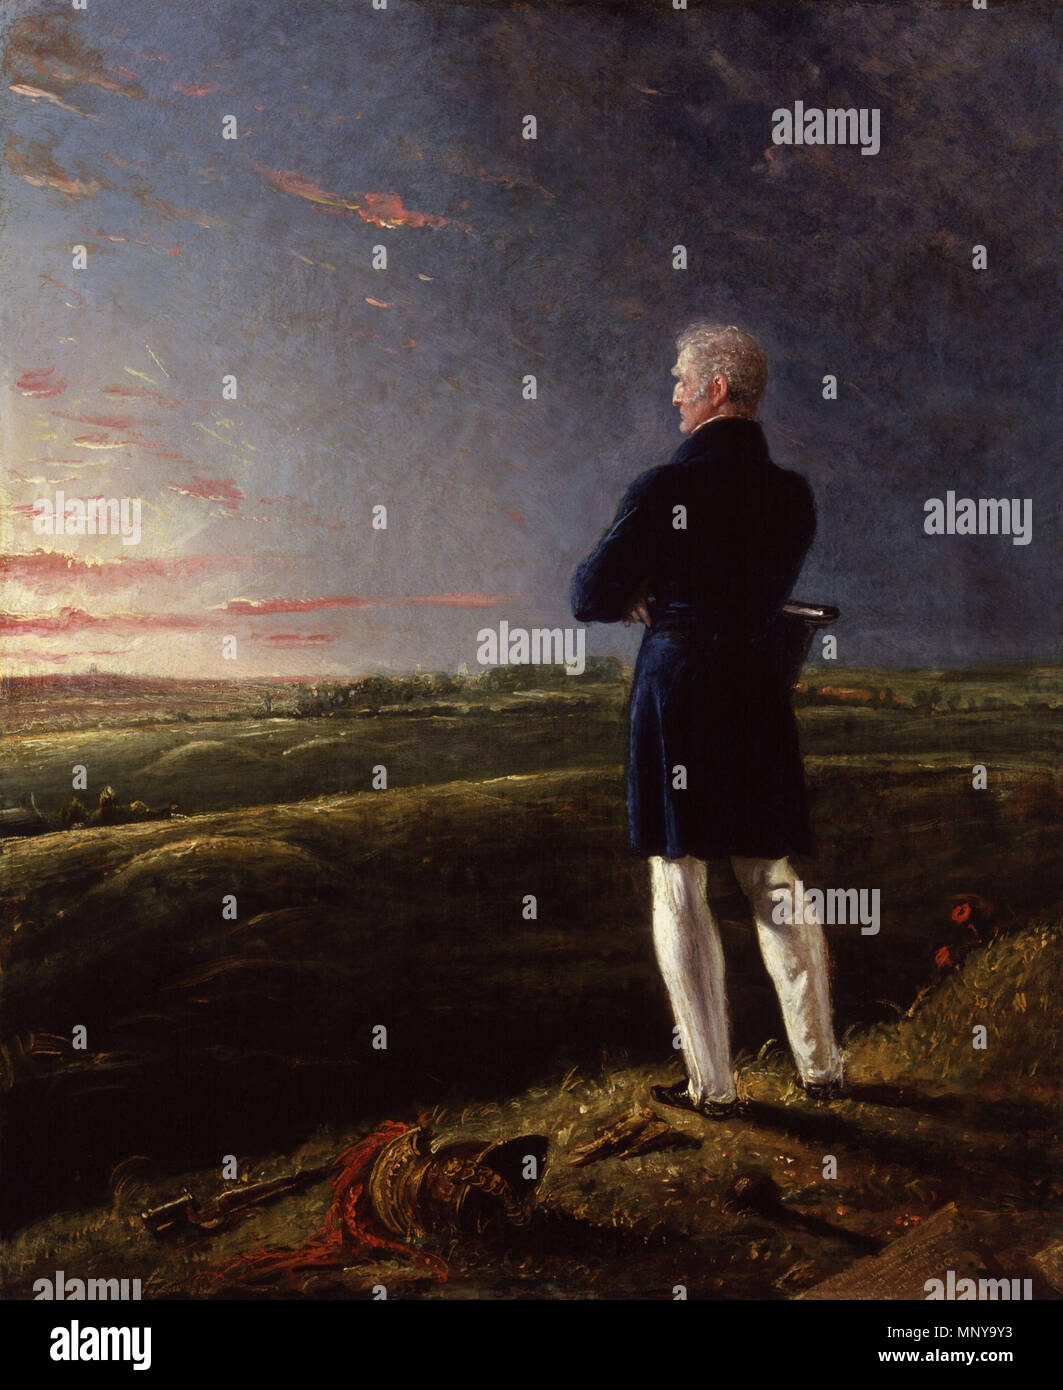 Arthur Wellesley, 1st Duke of Wellington . Arthur Wellesley, 1st Duke of Wellington, overlooking the rolling field at Waterloo at sunrise, a companion piece to Napoleon Bonaparte on St Helena gazing across the sea at sunset. See website for additional information. Unknown date, but before 1846.   1255 Arthur Wellesley, 1st Duke of Wellington by Benjamin Robert Haydon - Stock Image